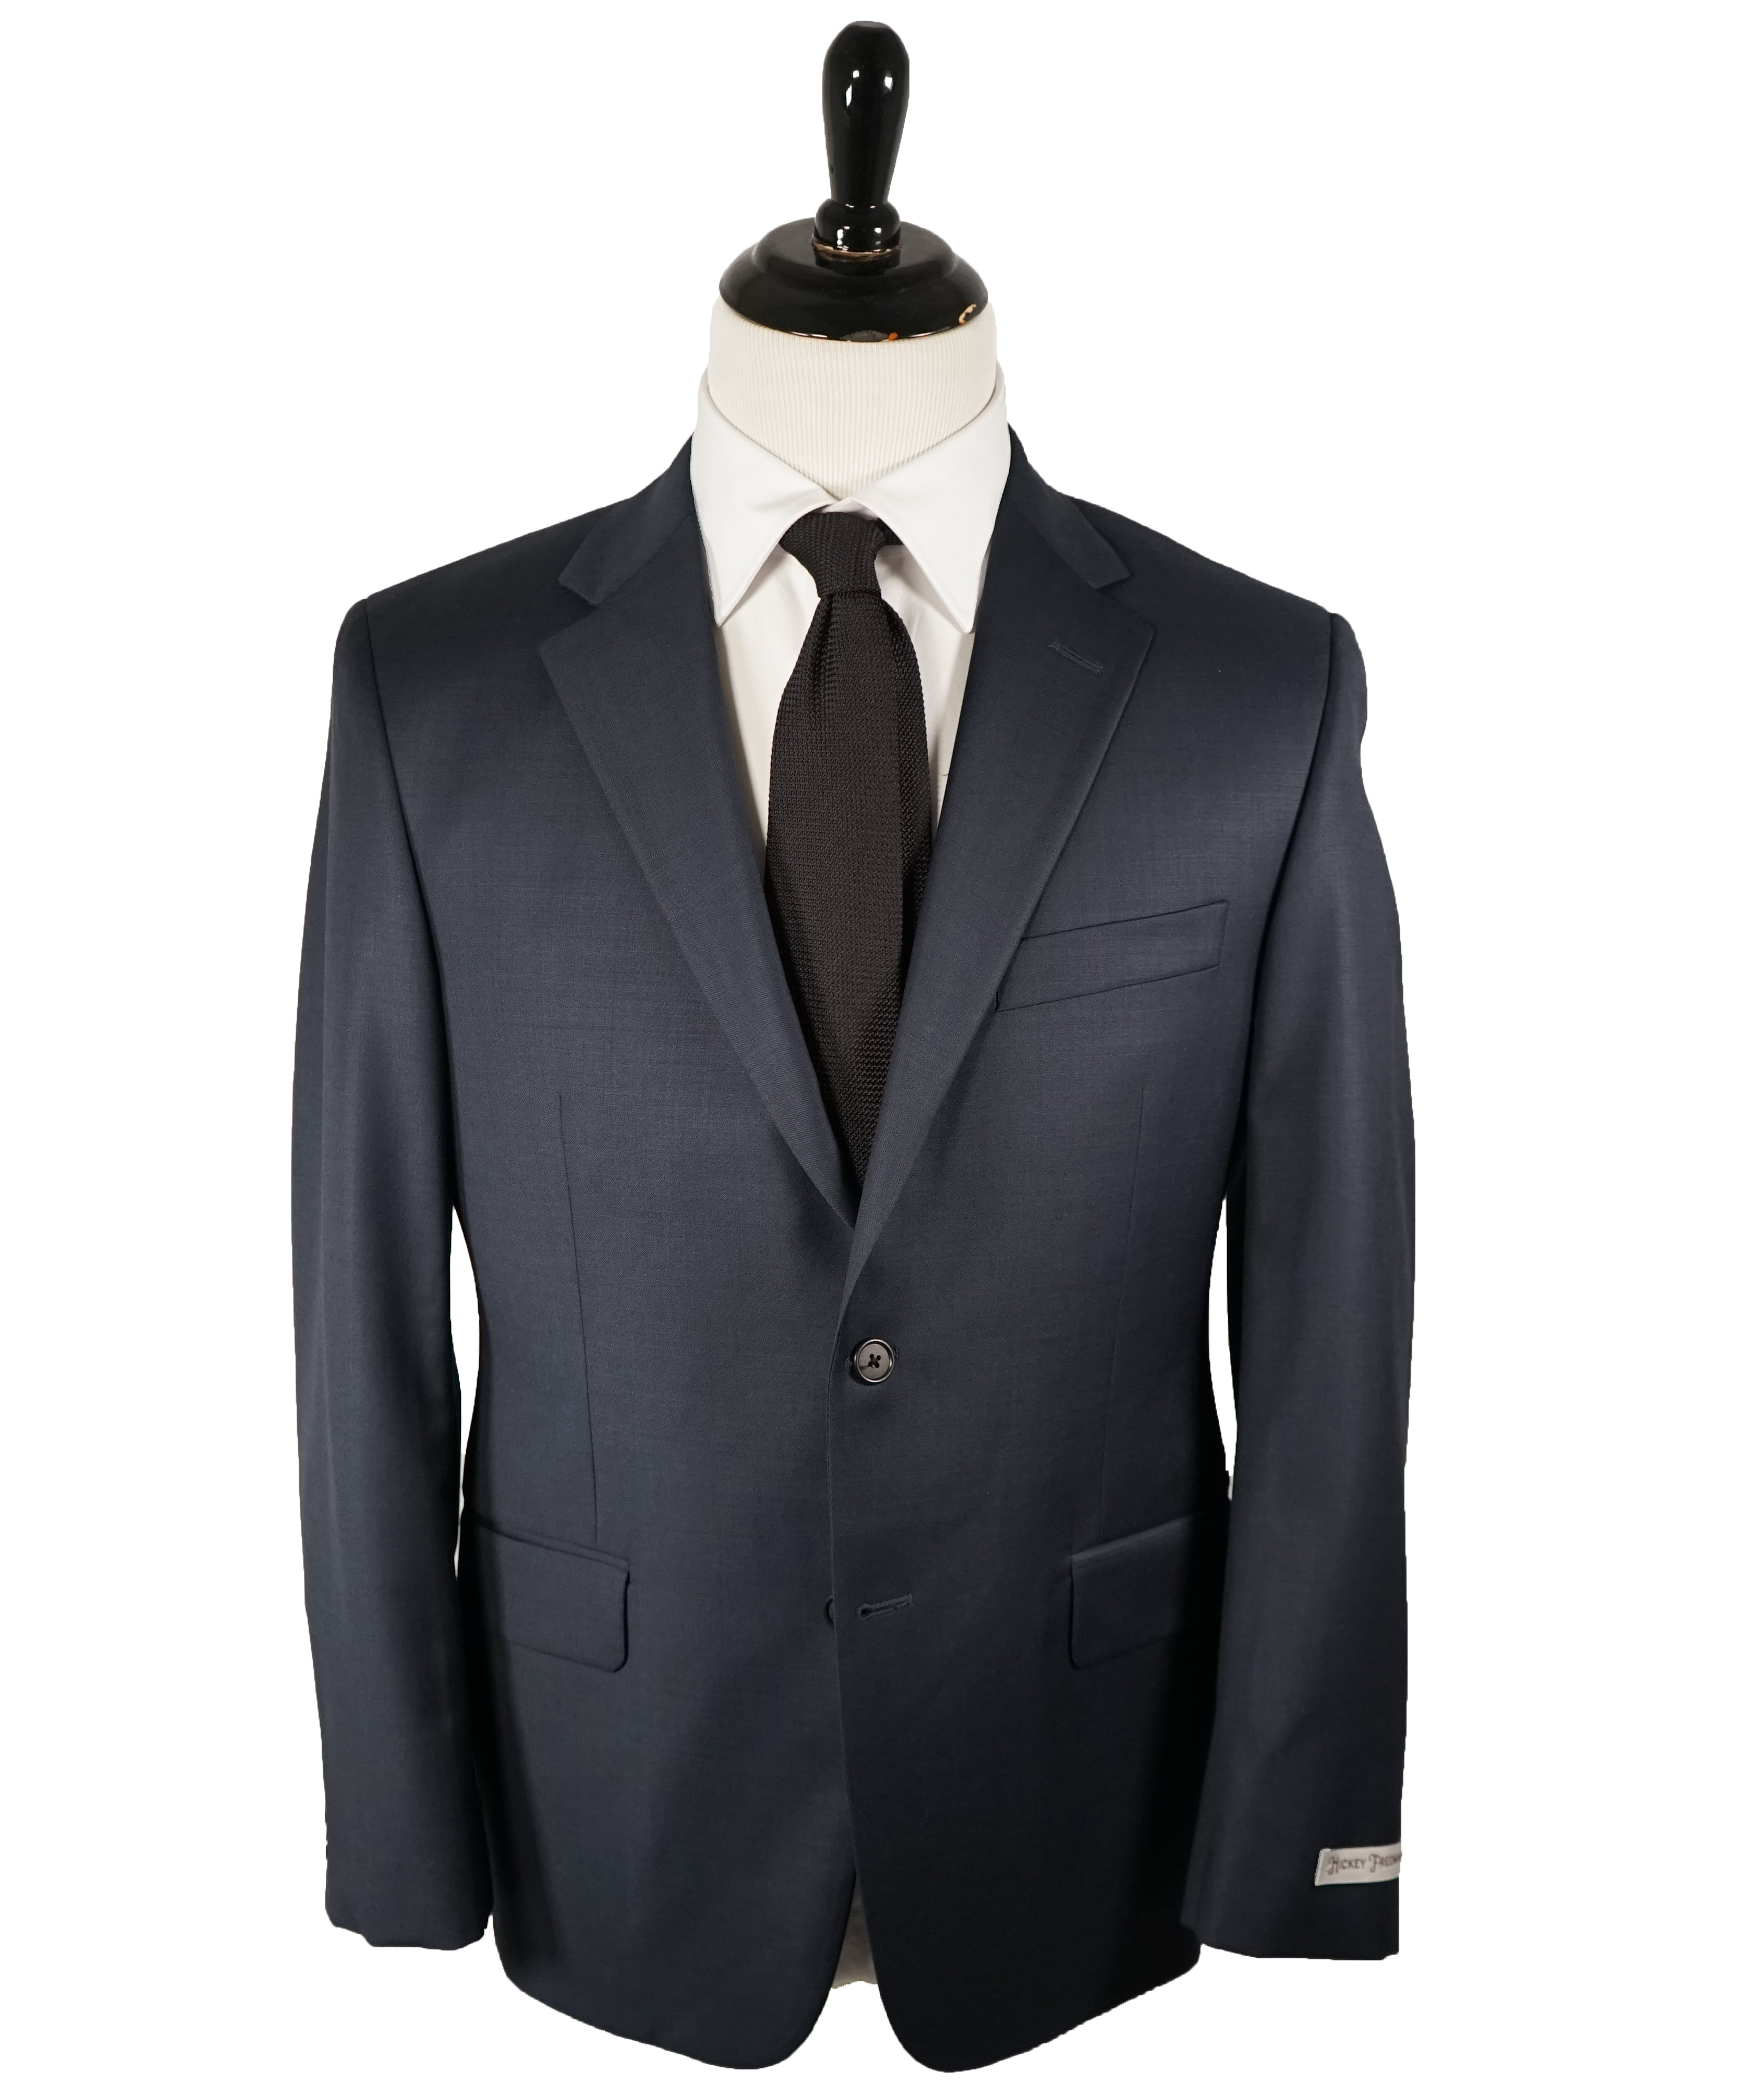 HICKEY FREEMAN - Navy Blue Textured Solid Suit - 40S